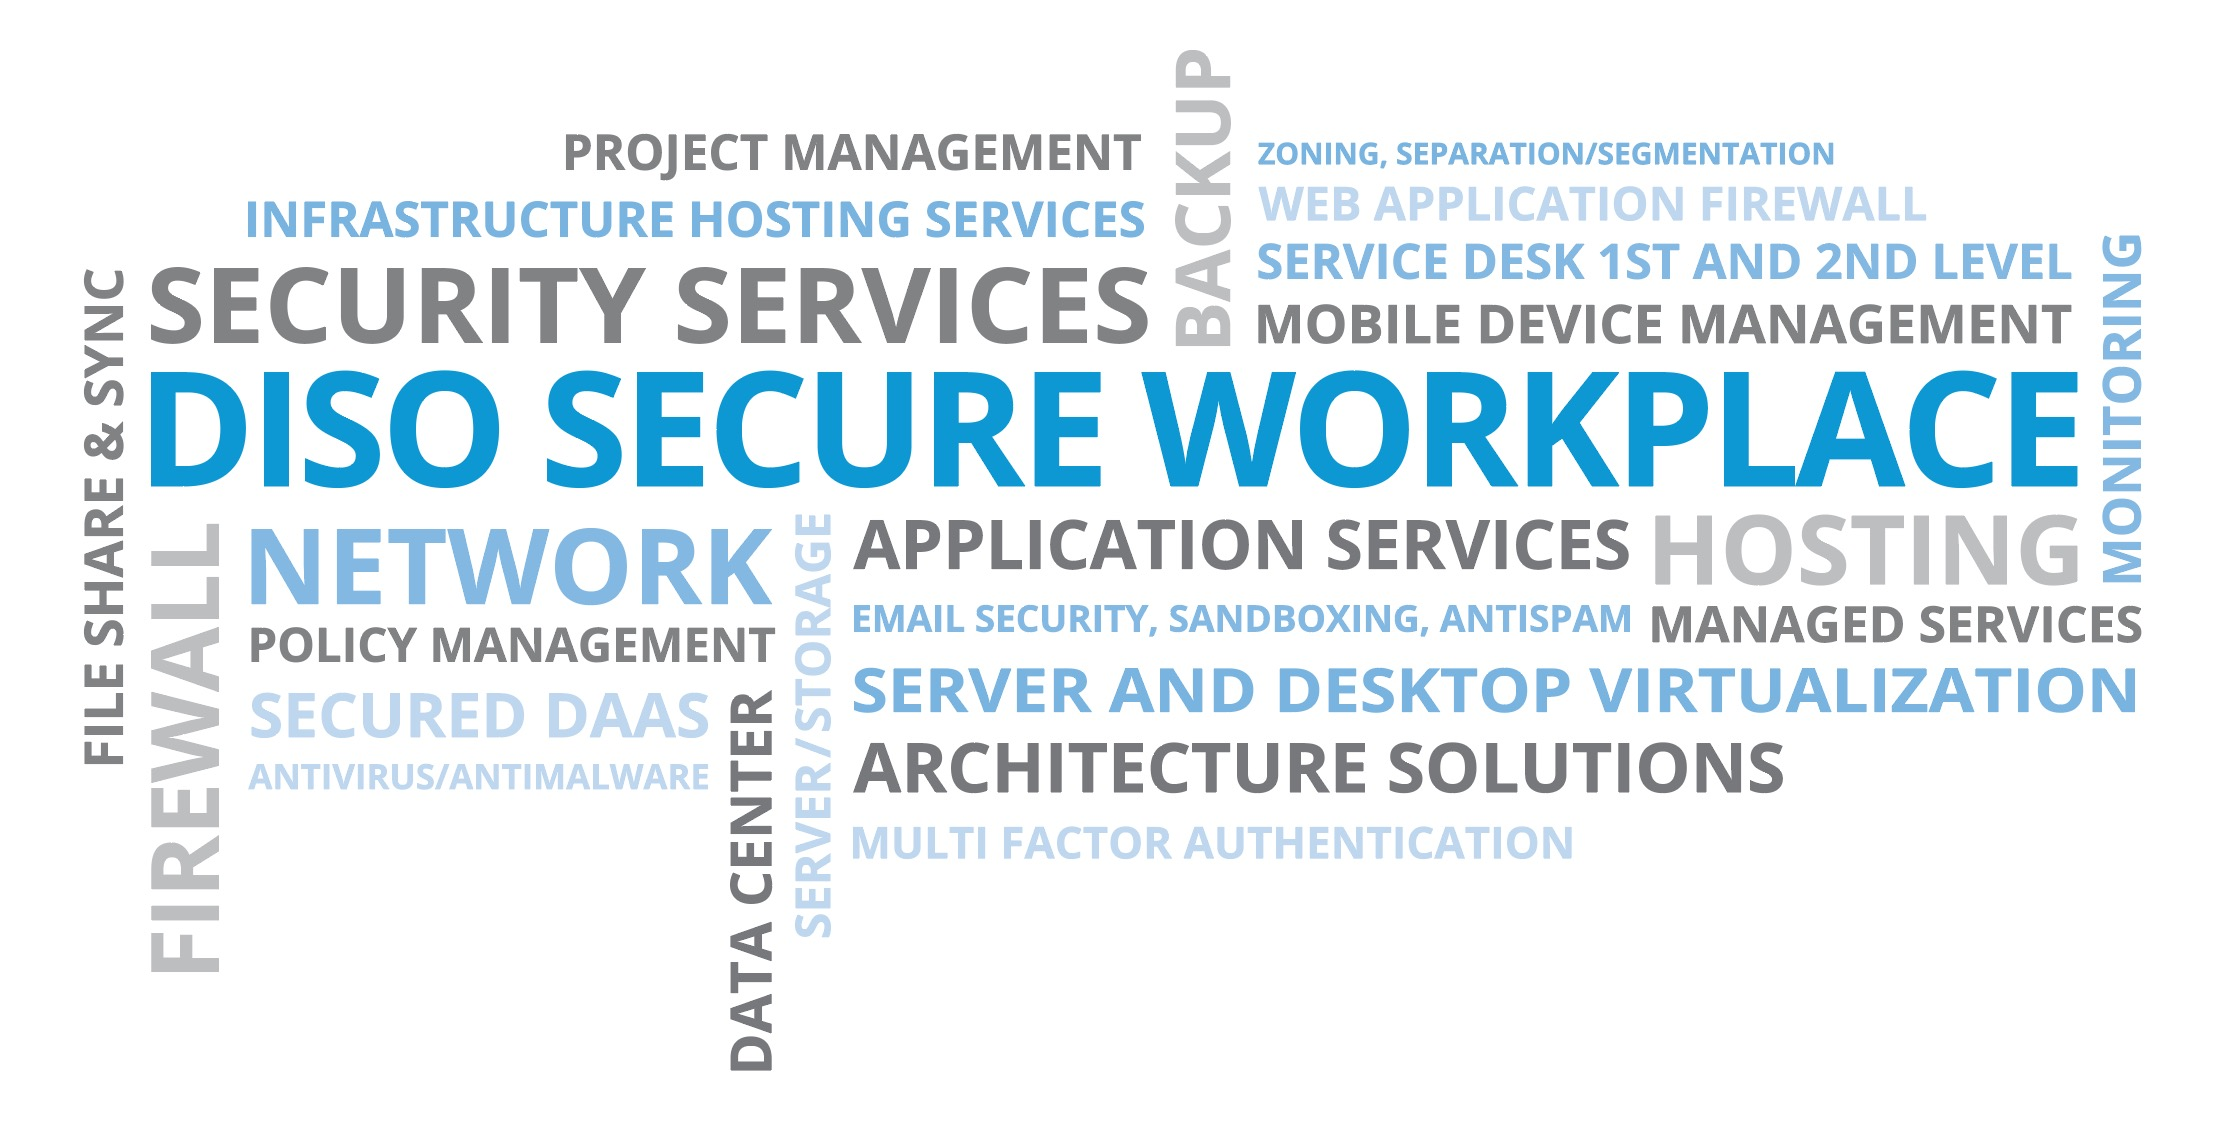 Diso Secure Workplace Word Cloud